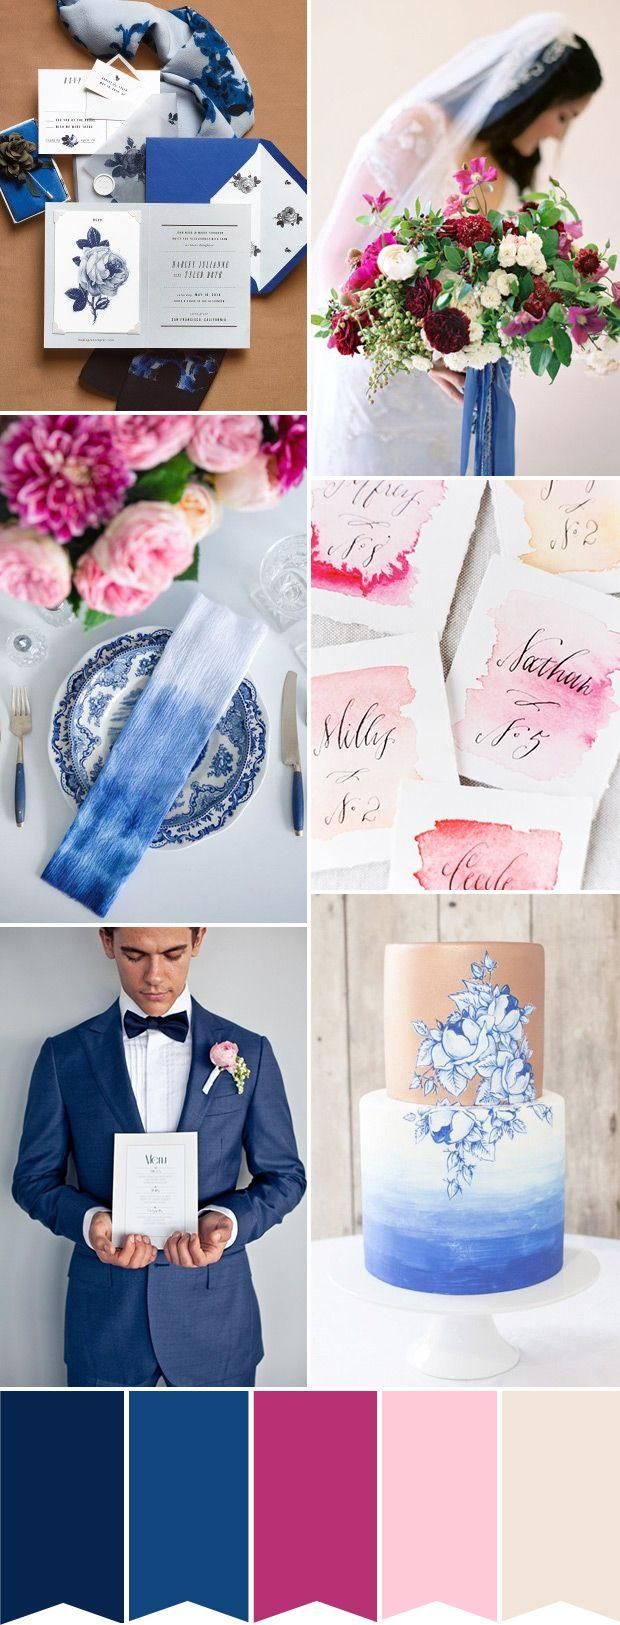 Свадьба - Modern Meets Tradition: A Different Blue & Pink Wedding